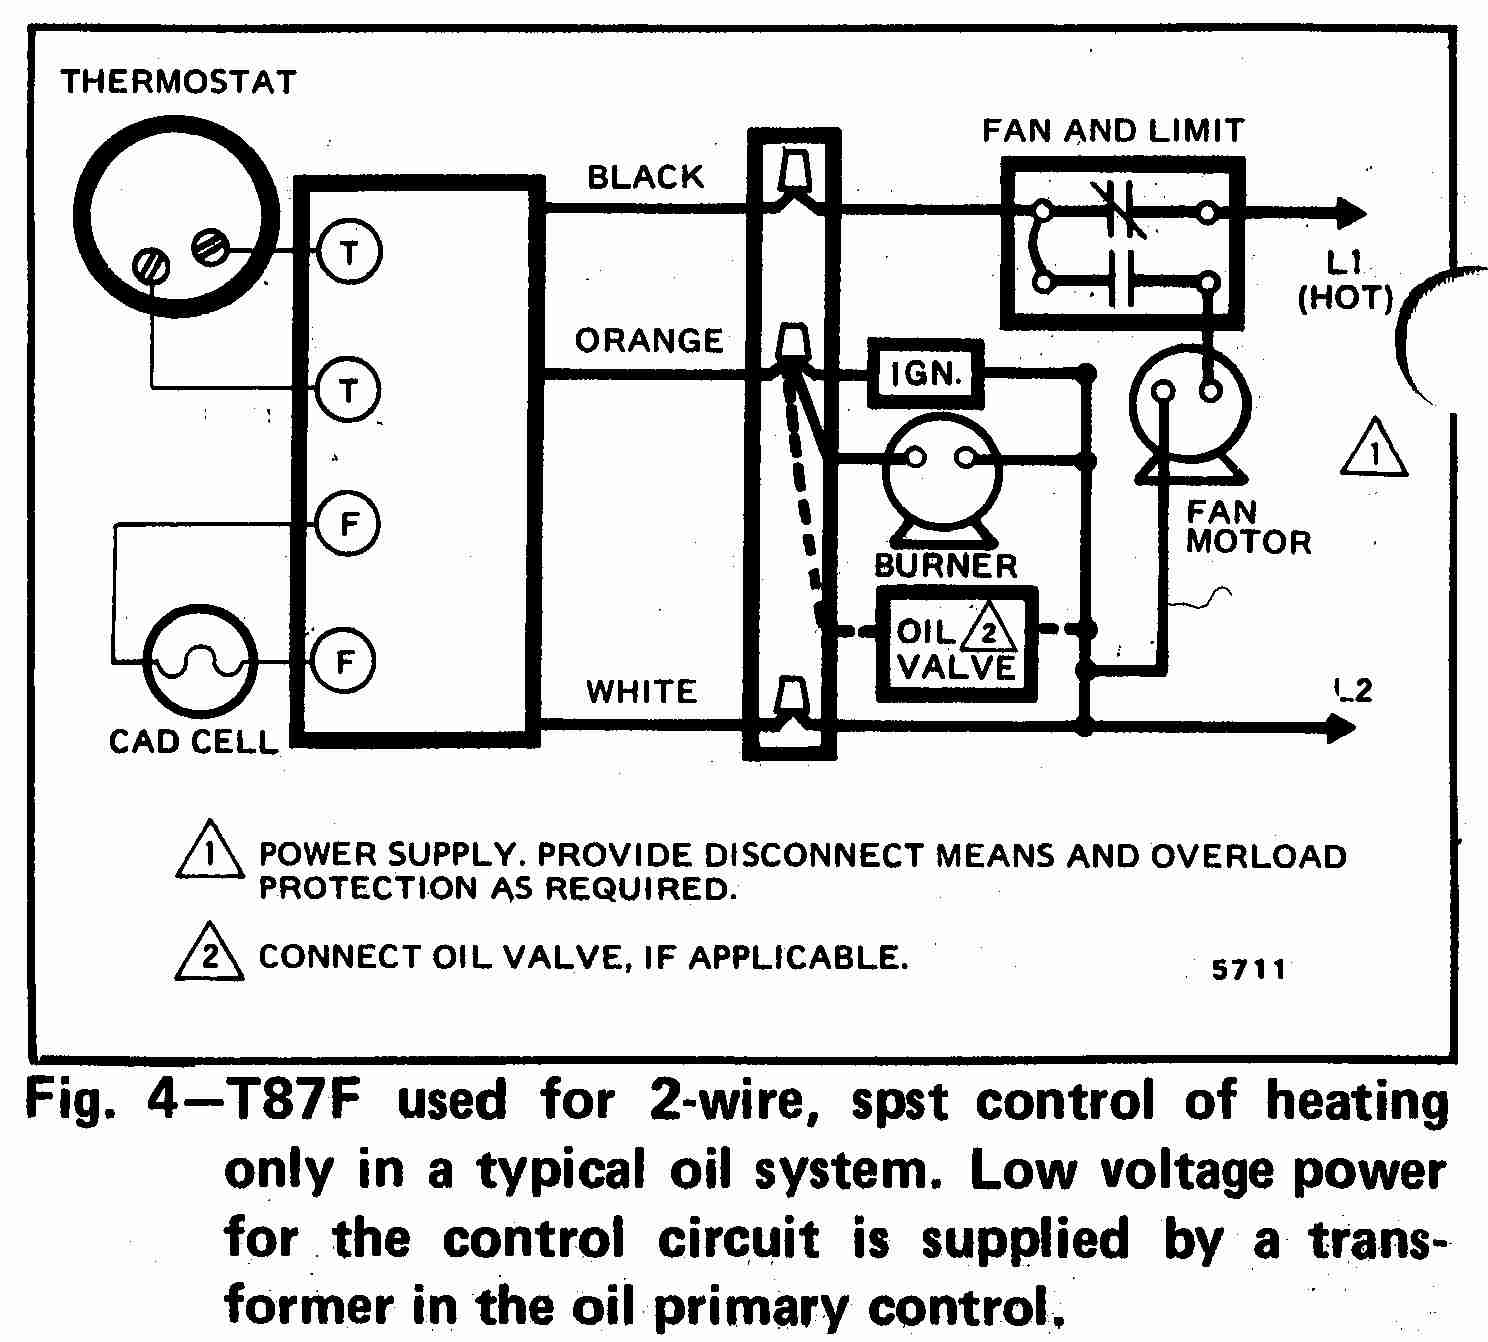 TT_T87F_0002_2W_DJF room thermostat wiring diagrams for hvac systems honeywell thermostat wiring diagram at eliteediting.co